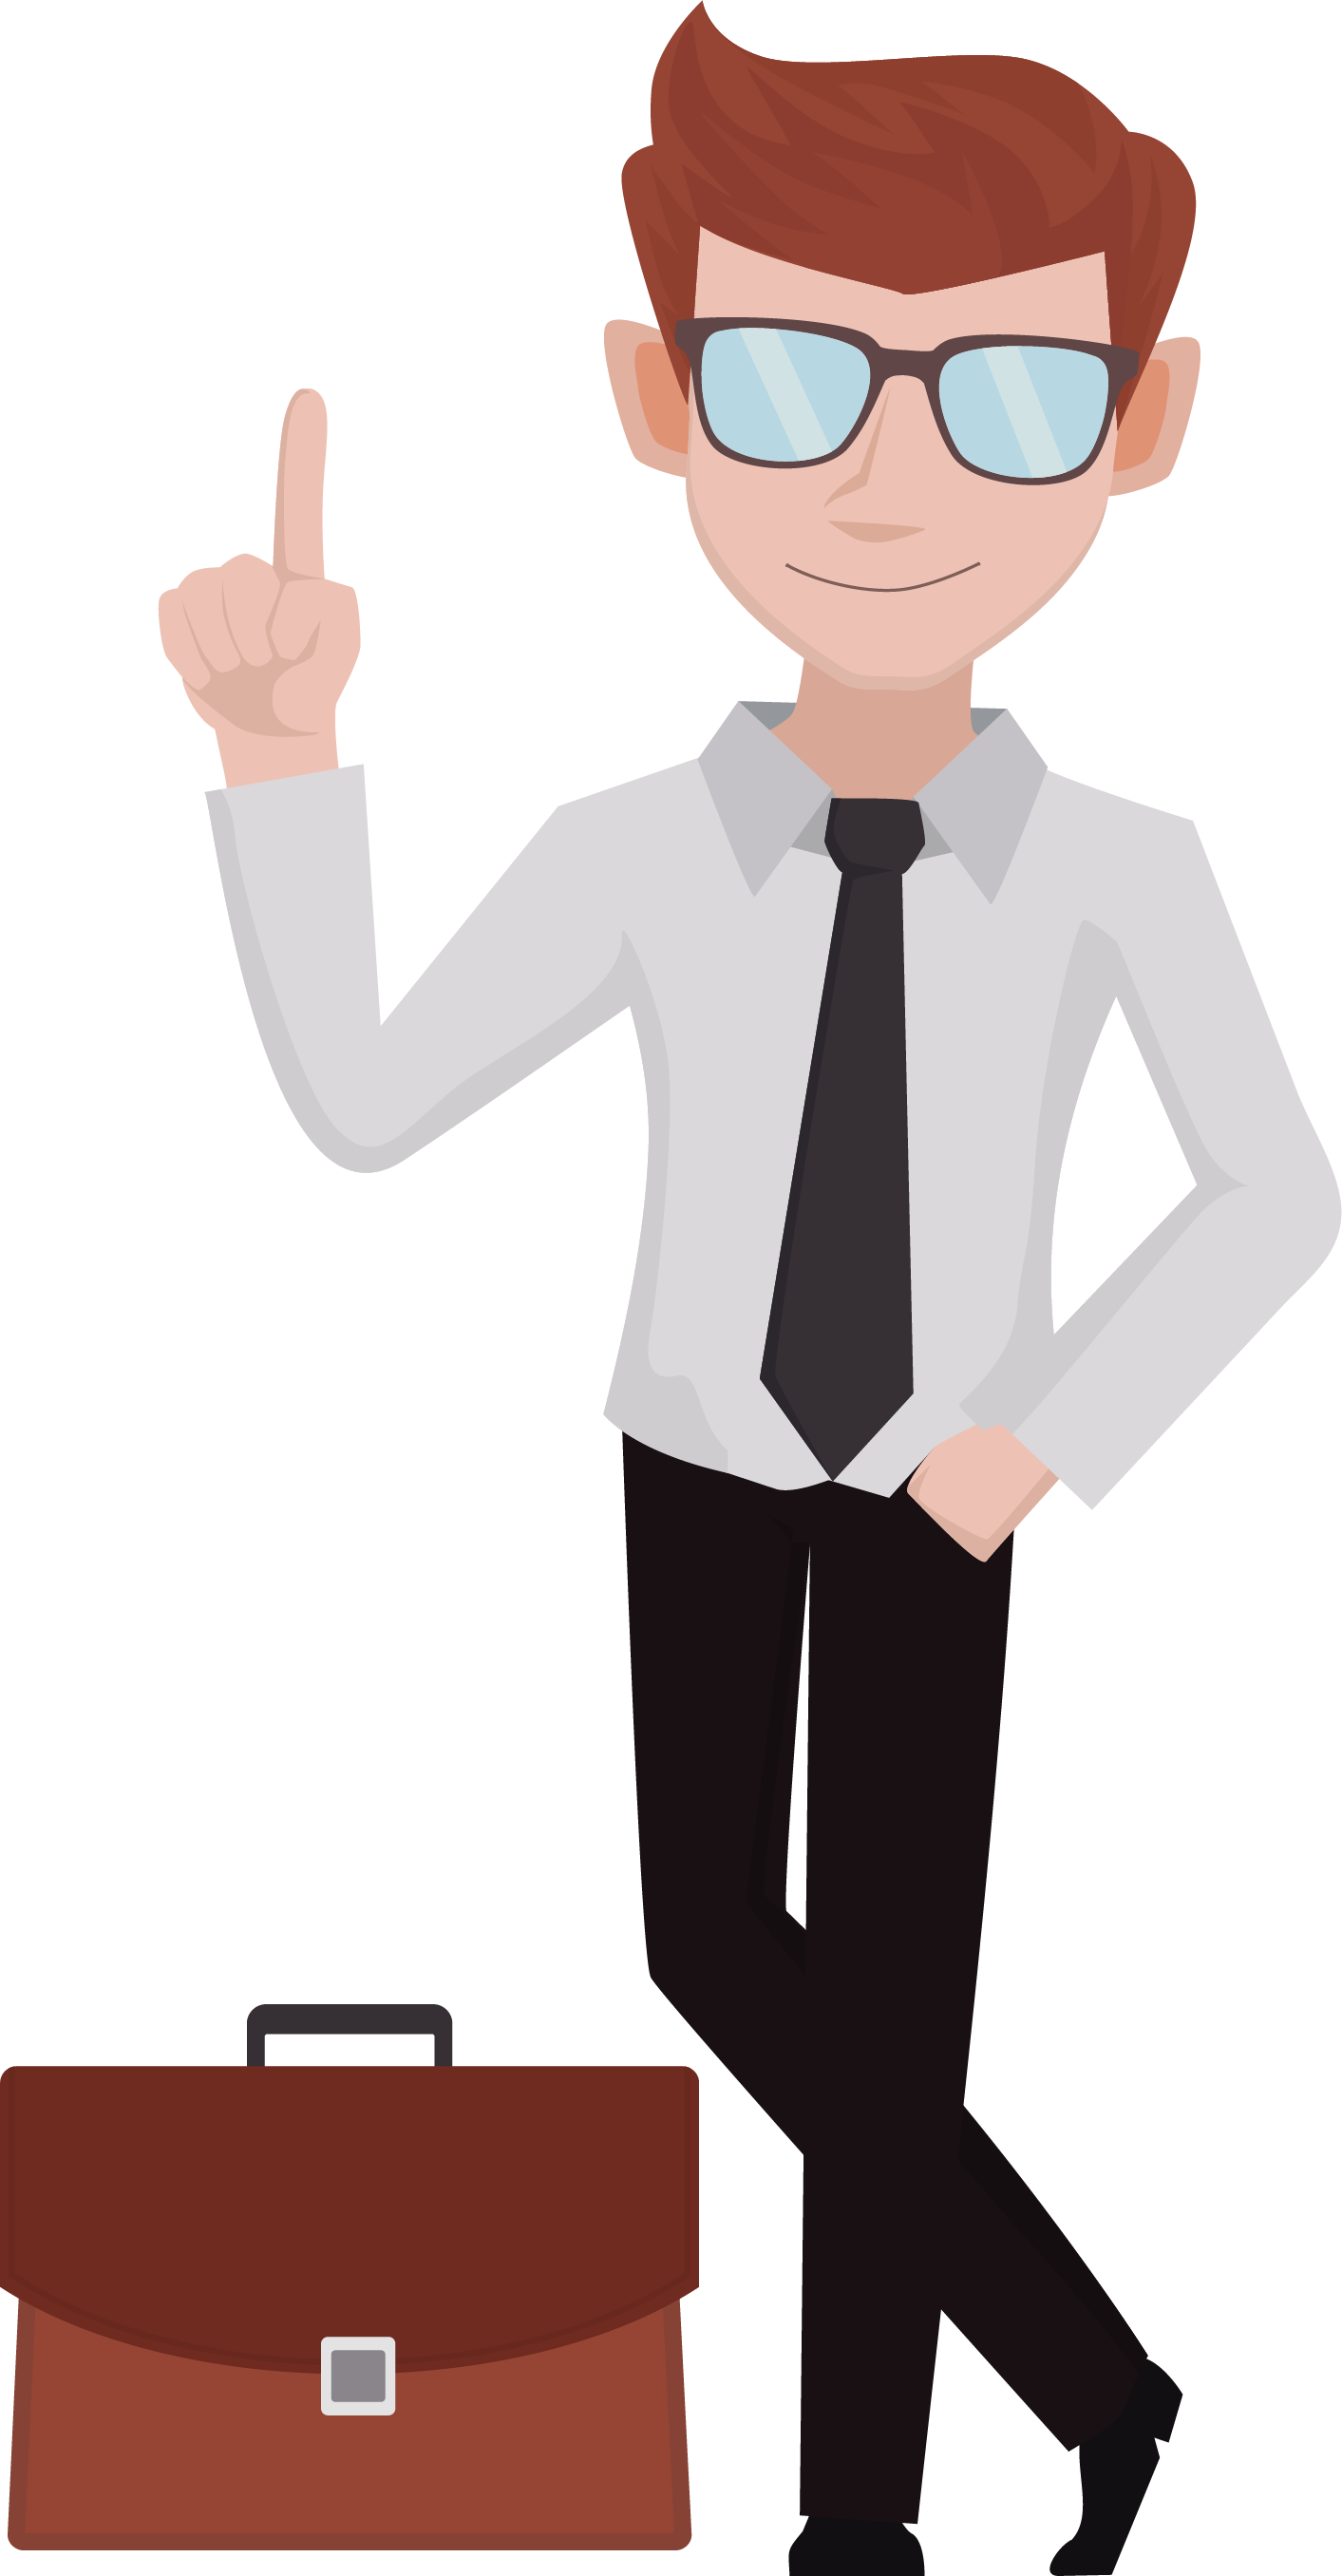 Businessman clipart png. Collection of transparent